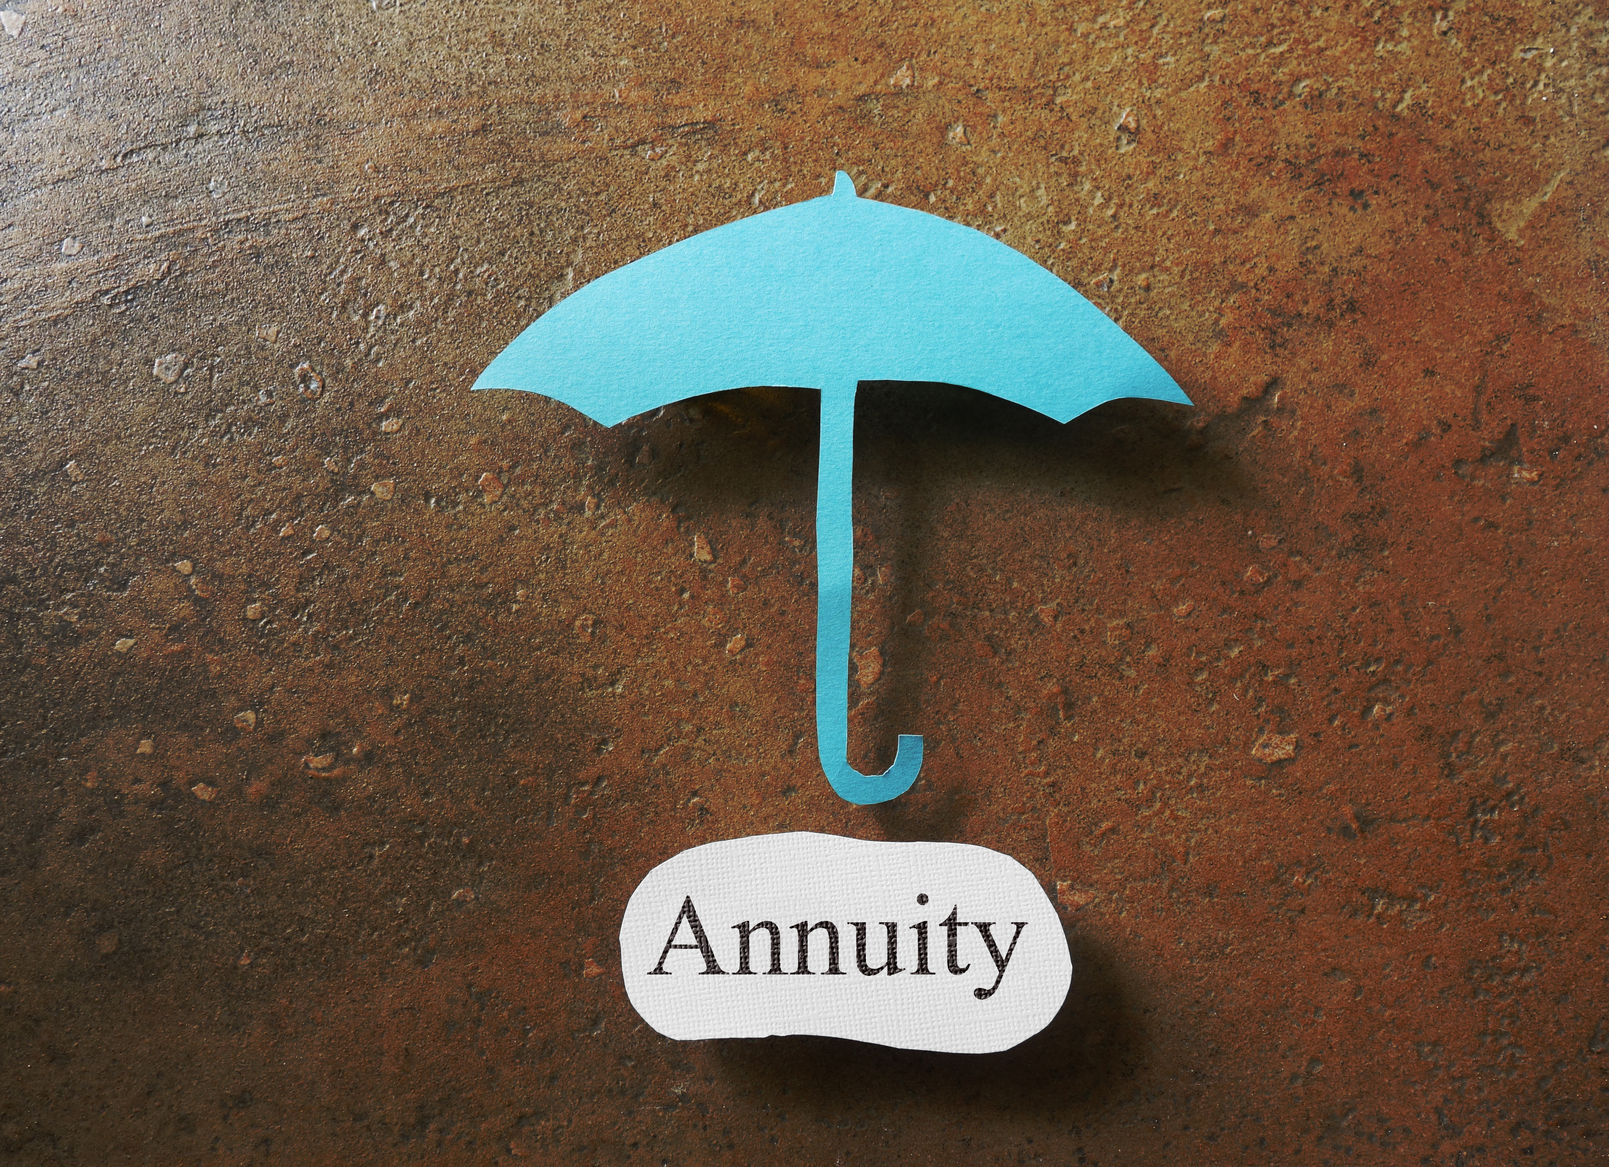 Annuity – Is It A Good Idea?